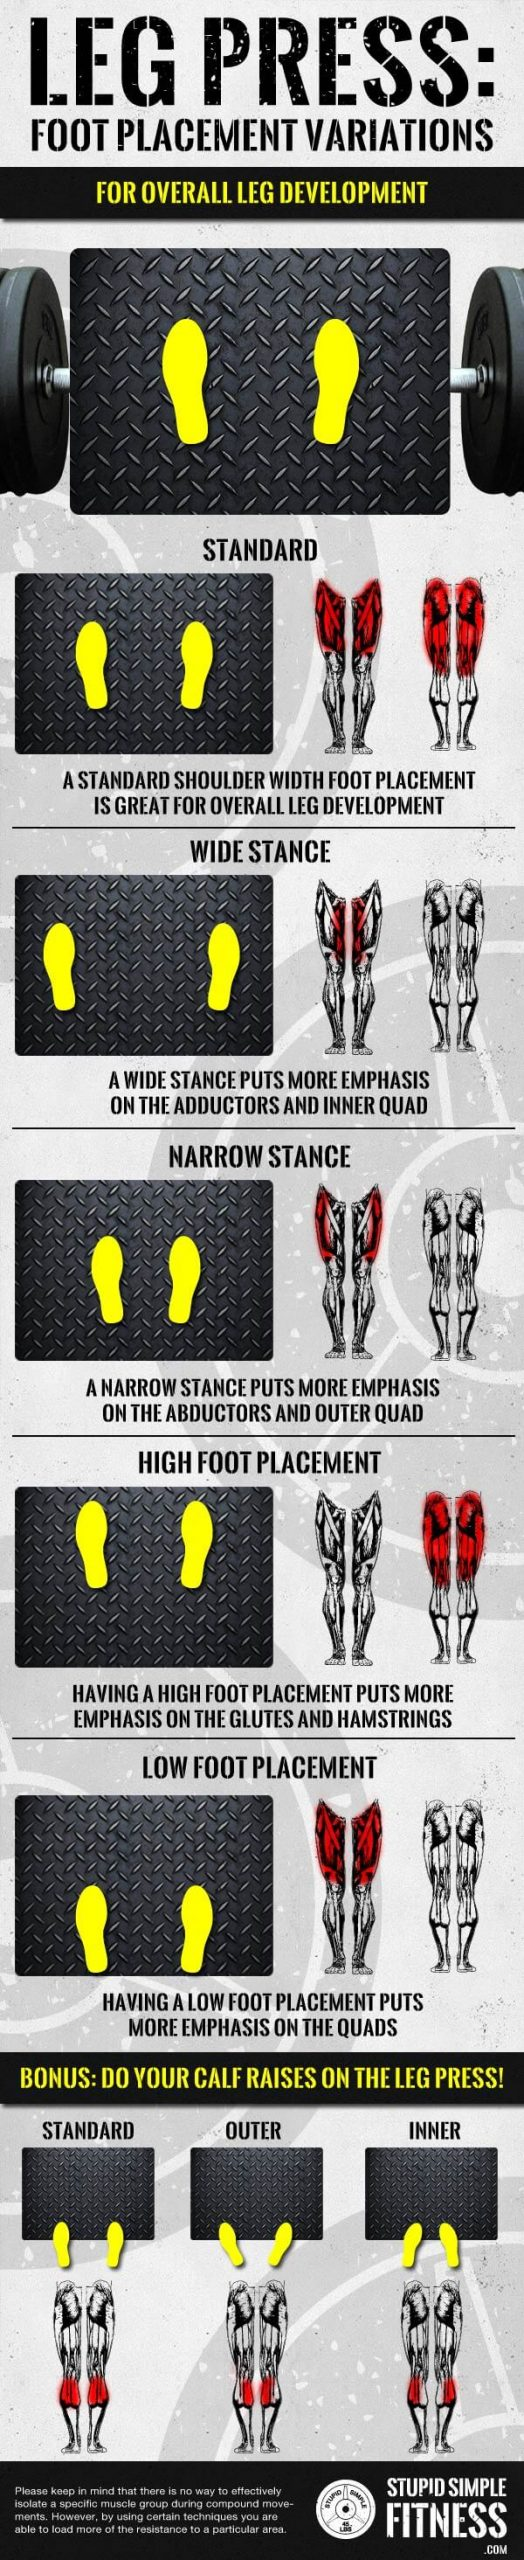 Leg Press Variations and Foot Placement